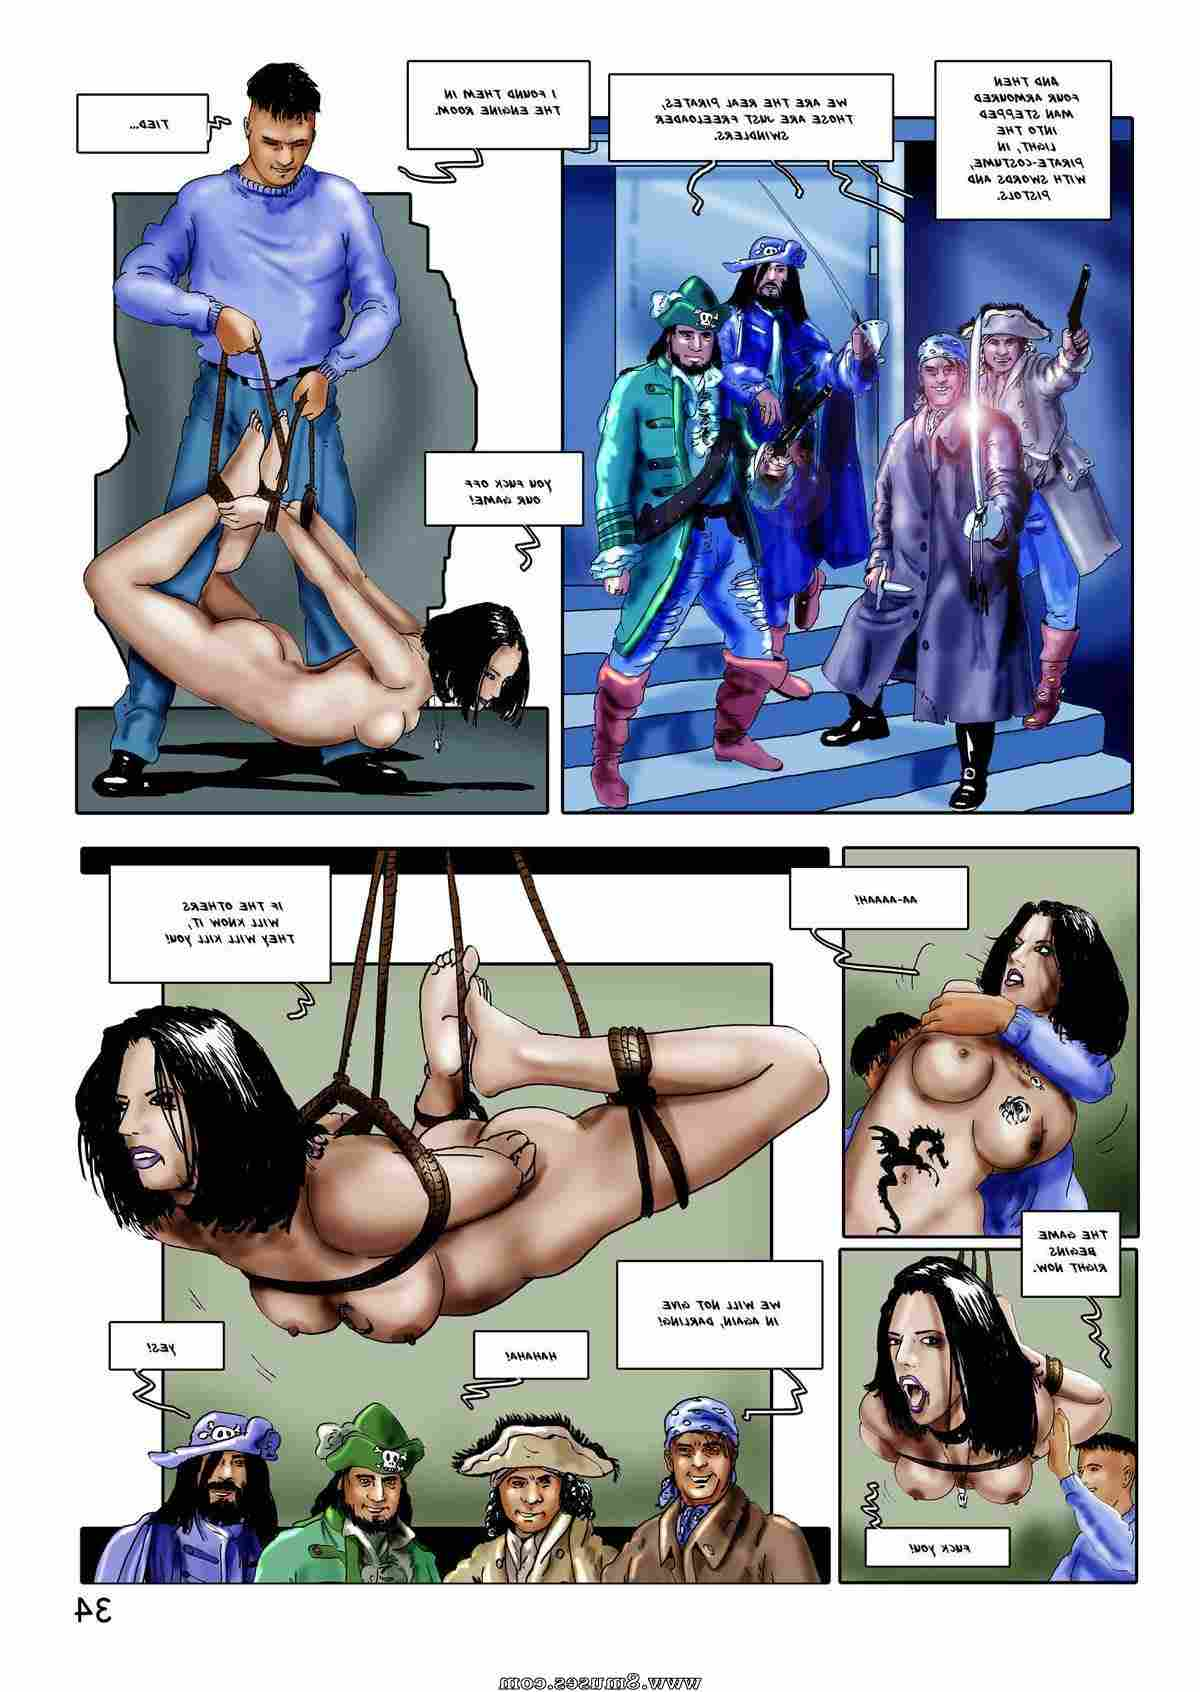 AllPornComics_com-Comics/Danube-Girls Danube_Girls__8muses_-_Sex_and_Porn_Comics_34.jpg